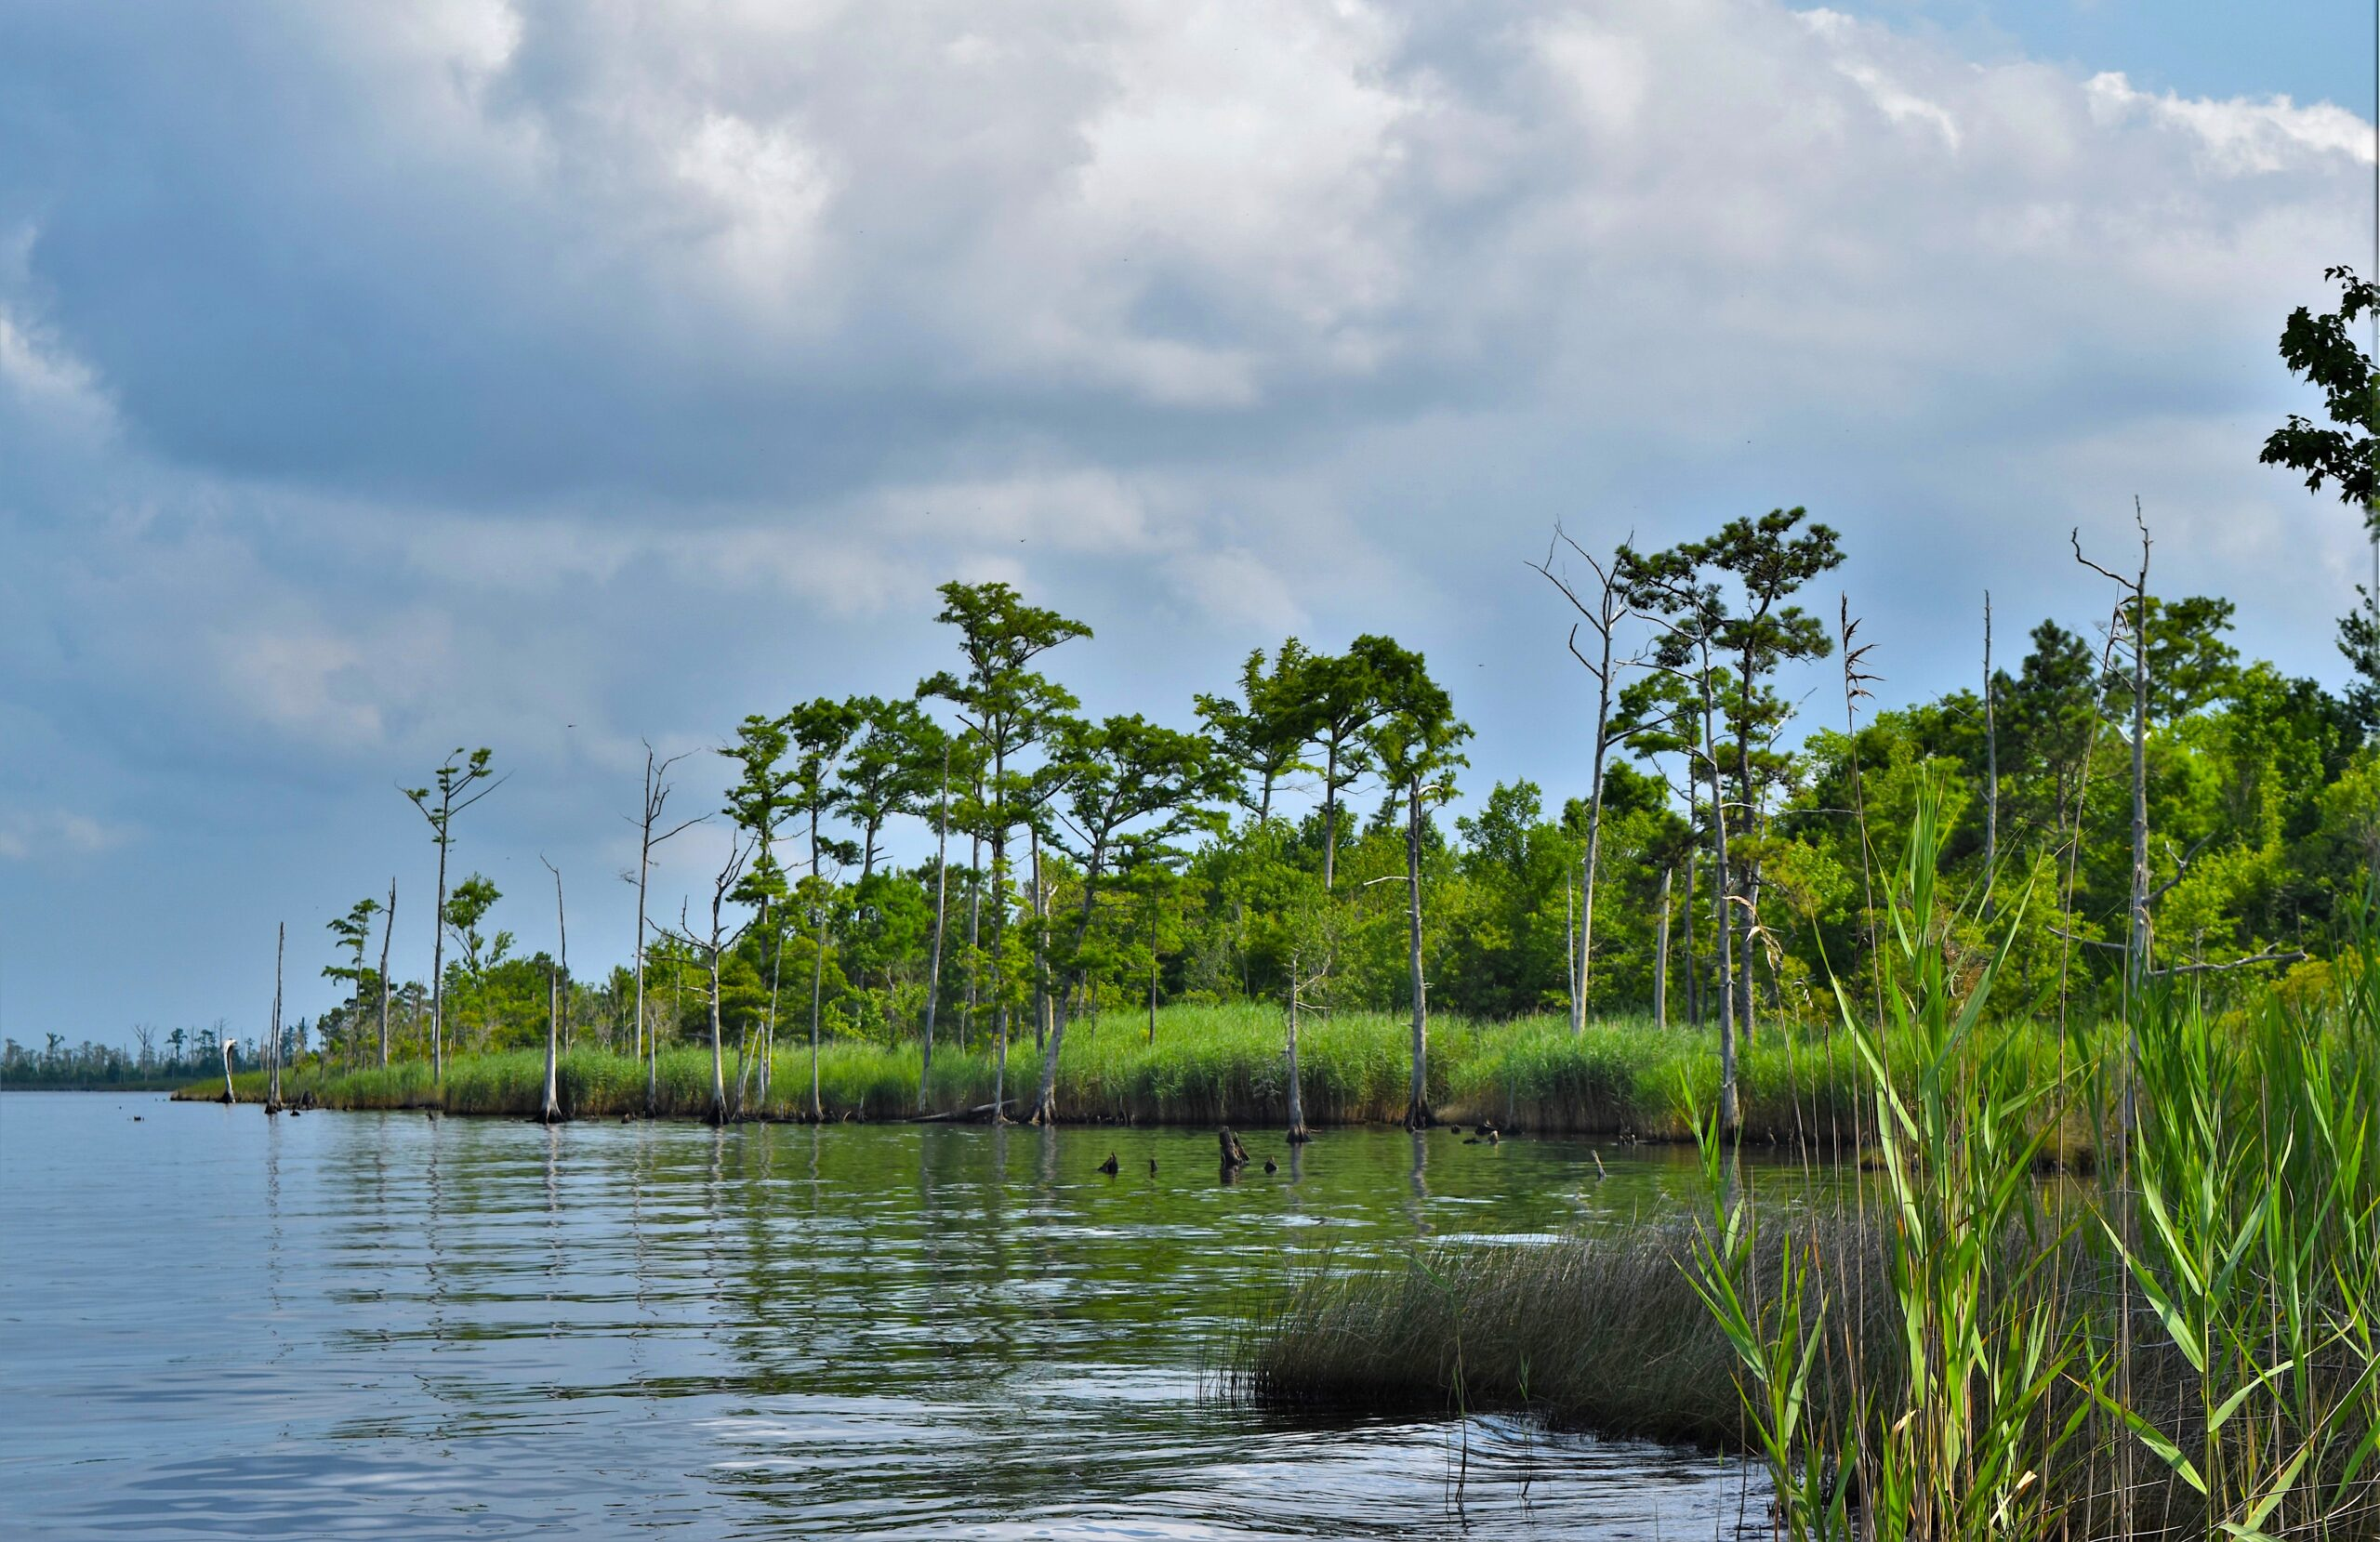 Manda's work has shown that wind tides are in fact the major drivers of saltwater into the Buckridge Coastal Reserve. Credit: NC Wetlands.